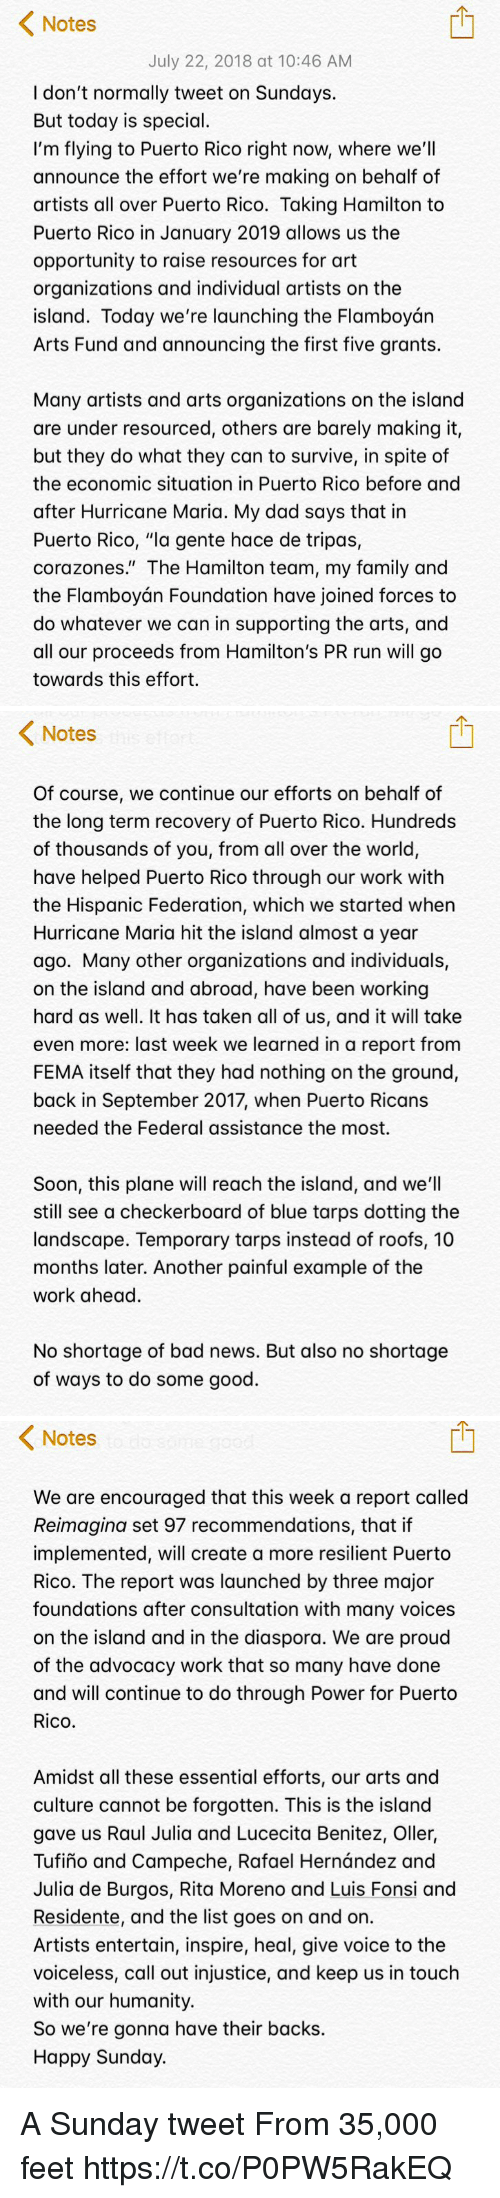 """federation: Notes  July 22, 2018 at 10:46 AM  I don't normally tweet on Sundays.  But today is special.  I'm flying to Puerto Rico right now, where we'll  announce the effort we're making on behalf of  artists all over Puerto Rico. Taking Hamilton to  Puerto Rico in January 2019 allows us the  opportunity to raise resources for art  organizations and individual artists on the  island. Today we're launching the Flamboyán  Arts Fund and announcing the first five grants.  Many artists and arts organizations on the island  are under resourced, others are barely making it,  but they do what they can to survive, in spite of  the economic situation in Puerto Rico before and  after Hurricane Maria. My dad says that in  Puerto Rico, """"la gente hace de tripas,  corazones."""" The Hamilton team, my family and  the Flamboyán Foundation have joined forces to  do whatever we can in supporting the arts, and  all our proceeds from Hamilton's PR run will go  towards this effort.   Notes  Of course, we continue our efforts on behalf of  the long term recovery of Puerto Rico. Hundreds  of thousands of you, from all over the world,  have helped Puerto Rico through our work with  the Hispanic Federation, which we started when  Hurricane Maria hit the island almost a year  ago. Many other organizations and individuals,  on the island and abroad, have been working  hard as well. It has taken all of us, and it will take  even more: last week we learned in a report from  FEMA itself that they had nothing on the ground,  back in September 2017, when Puerto Ricans  needed the Federal assistance the most.  Soon, this plane will reach the island, and we'll  still see a checkerboard of blue tarps dotting the  landscape. Temporary tarps instead of roofs, 10  months later. Another painful example of the  work ahead.  No shortage of bad news. But also no shortage  of ways to do some good.   < Notes  We are encouraged that this week a report called  Reimagina set 97 recommendations, that if  implemented"""